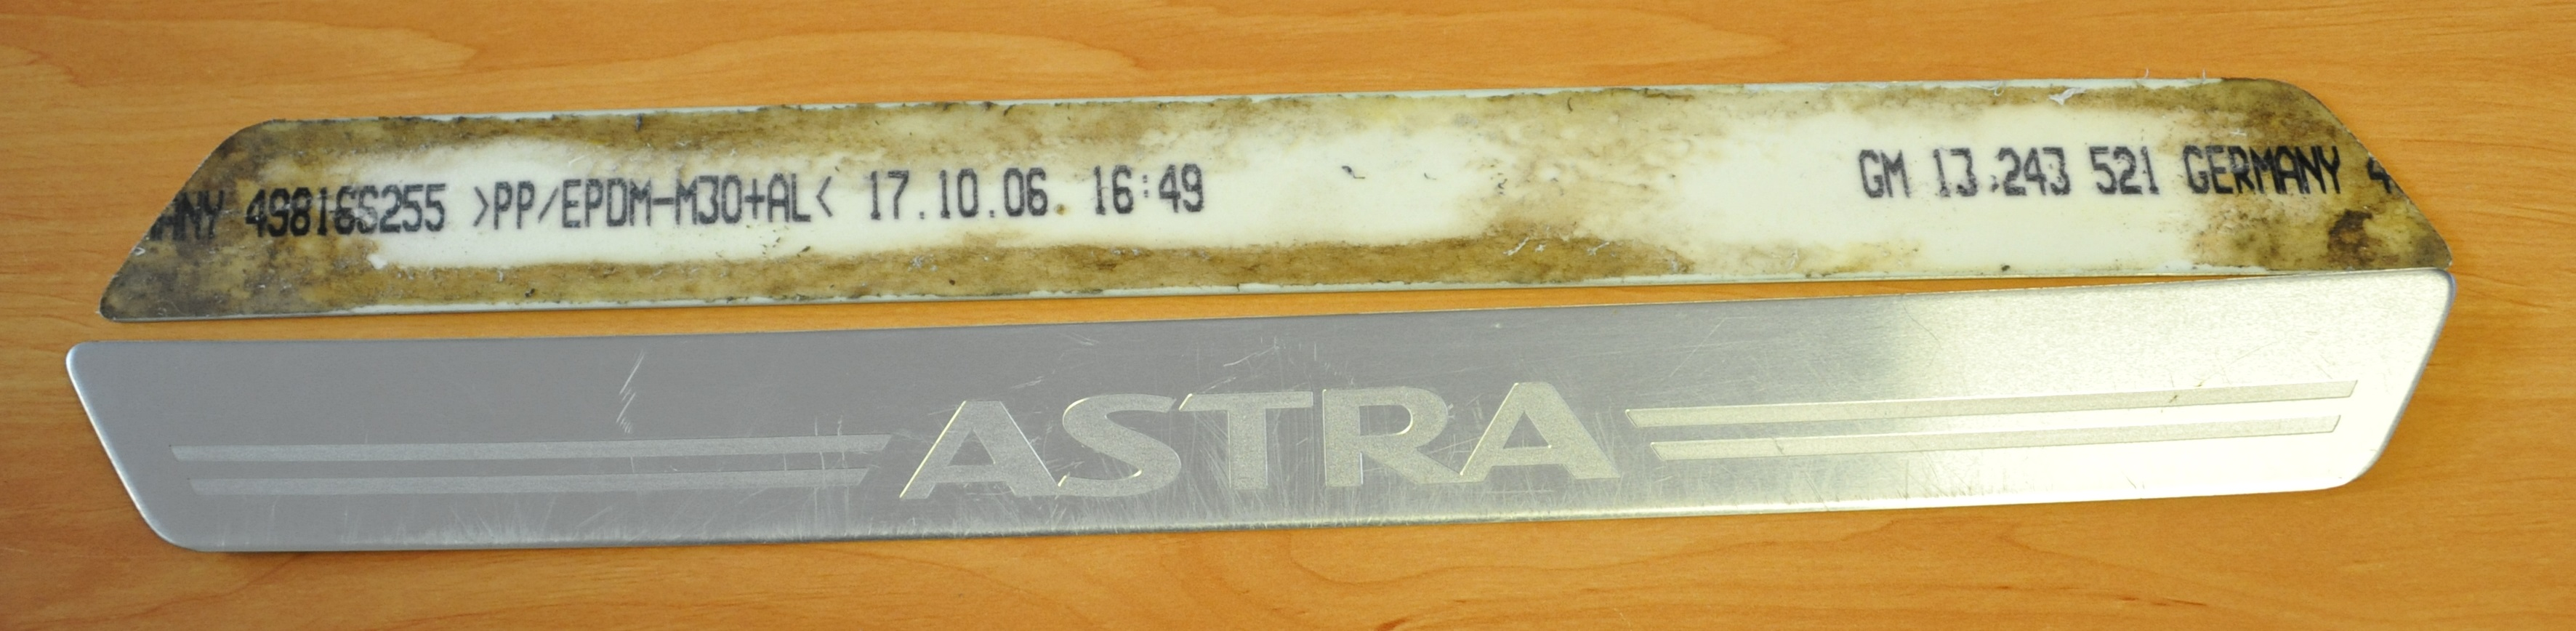 13243521, Nameplate, astra GM part